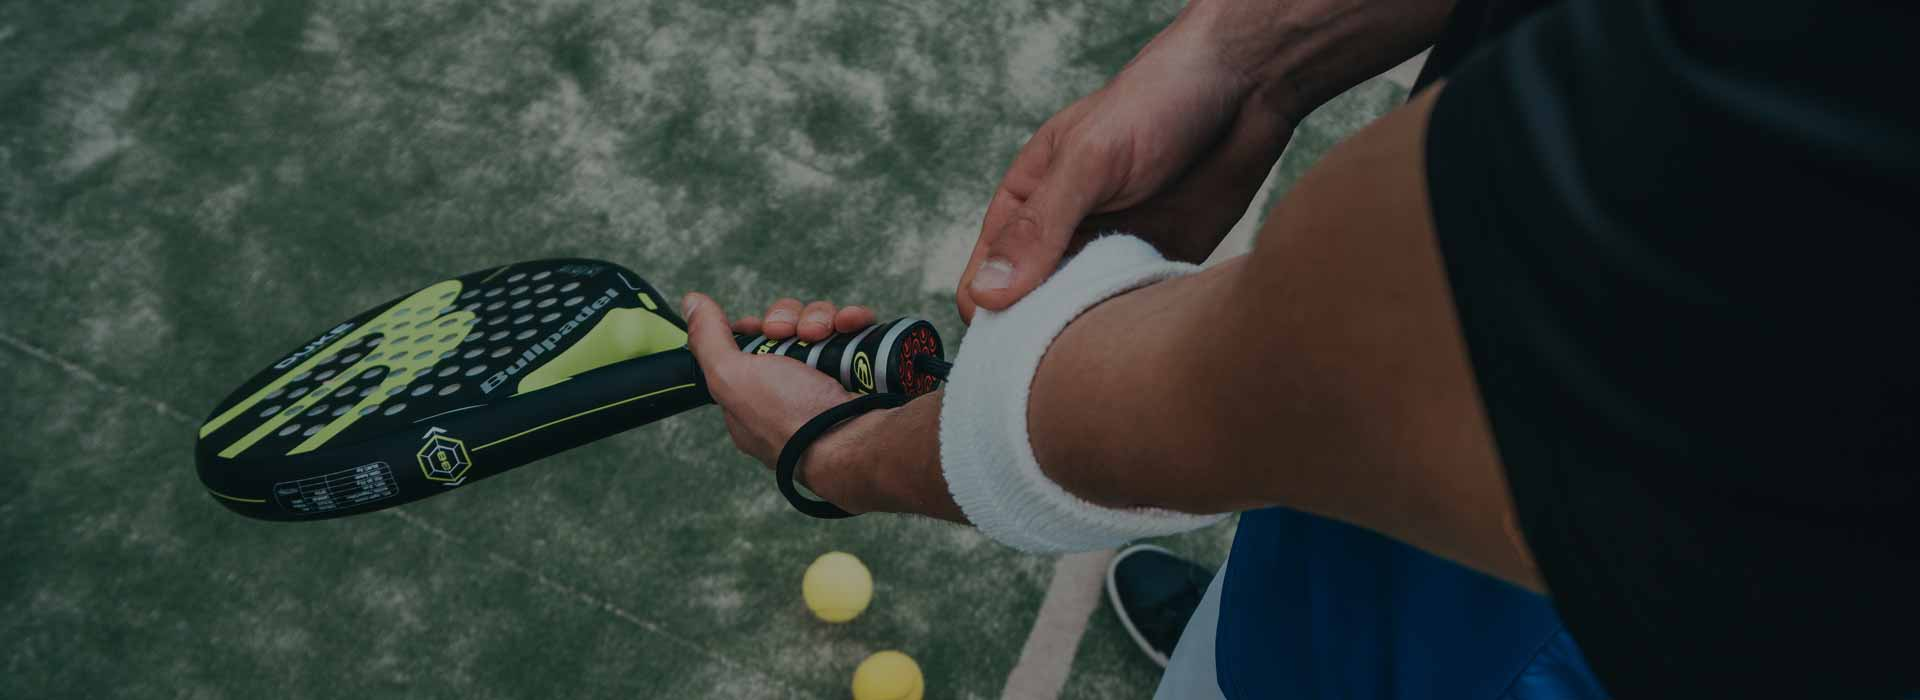 Tennis player adjusting sweat band - Dr. Herbert Gates III M.D. - Orthopedic Surgeon in Naples, Florida